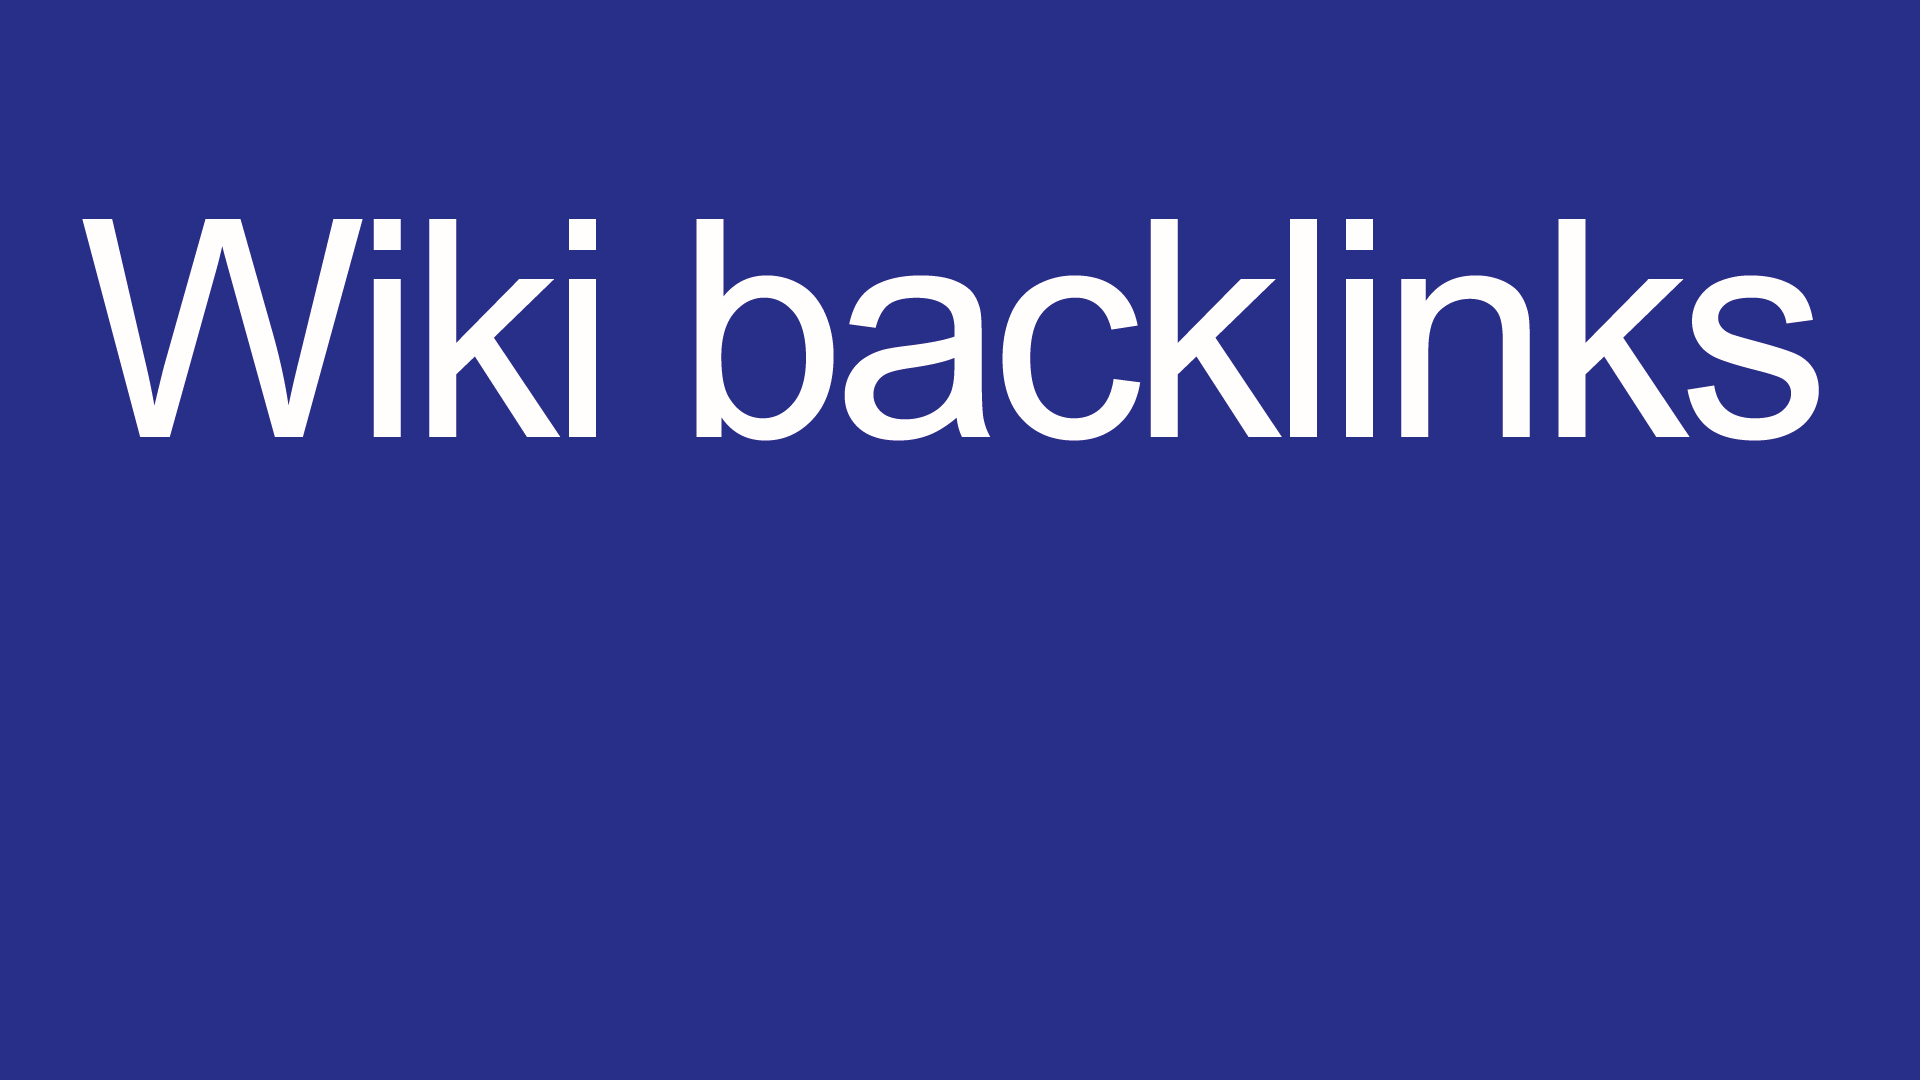 Wiki backlinks 4000 backlinks for your site